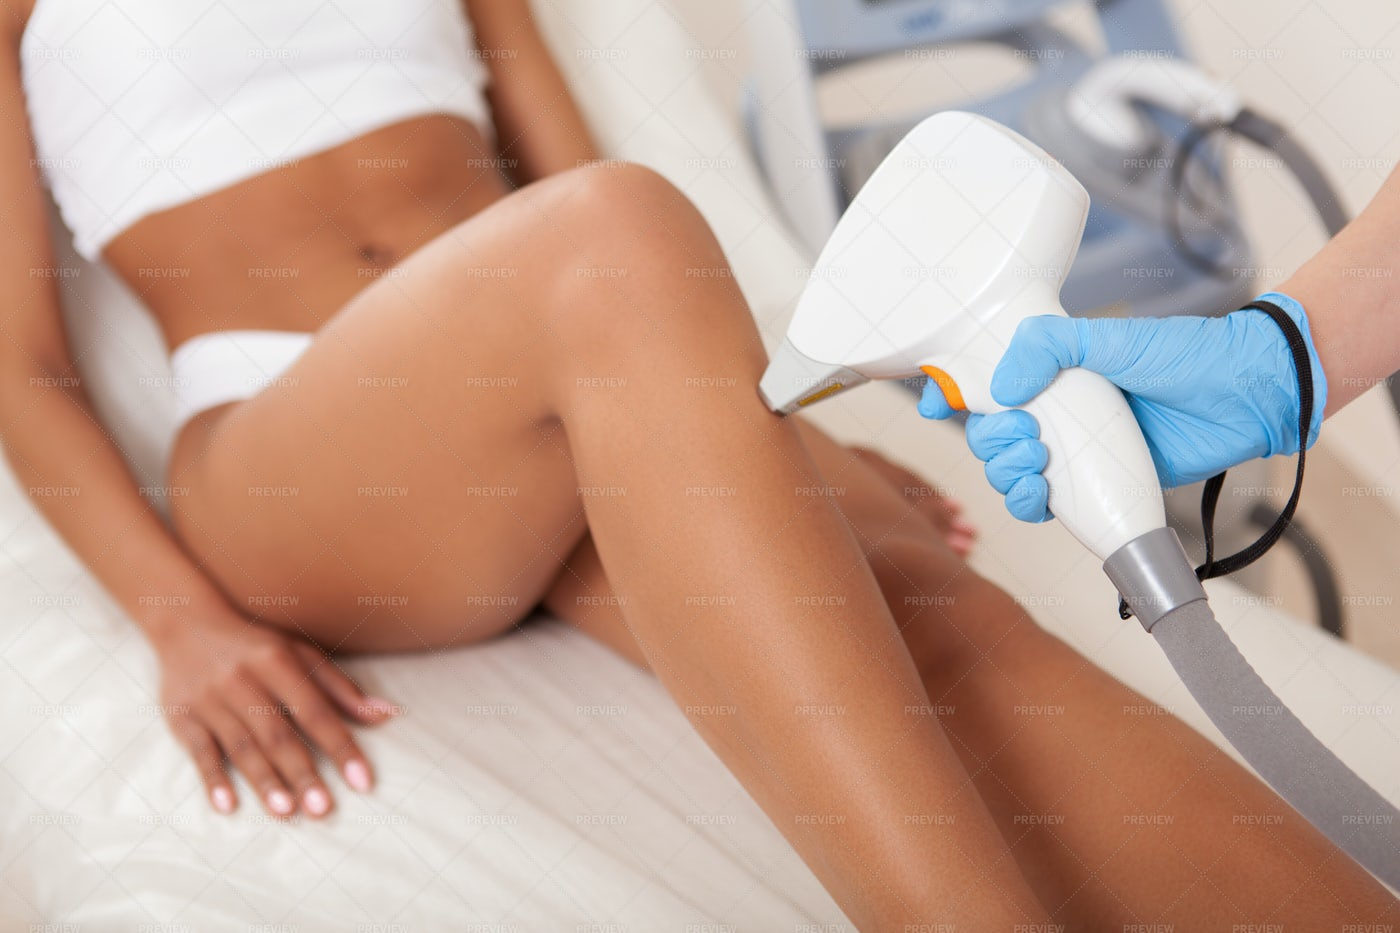 Laser Hair Removal On Legs: Stock Photos